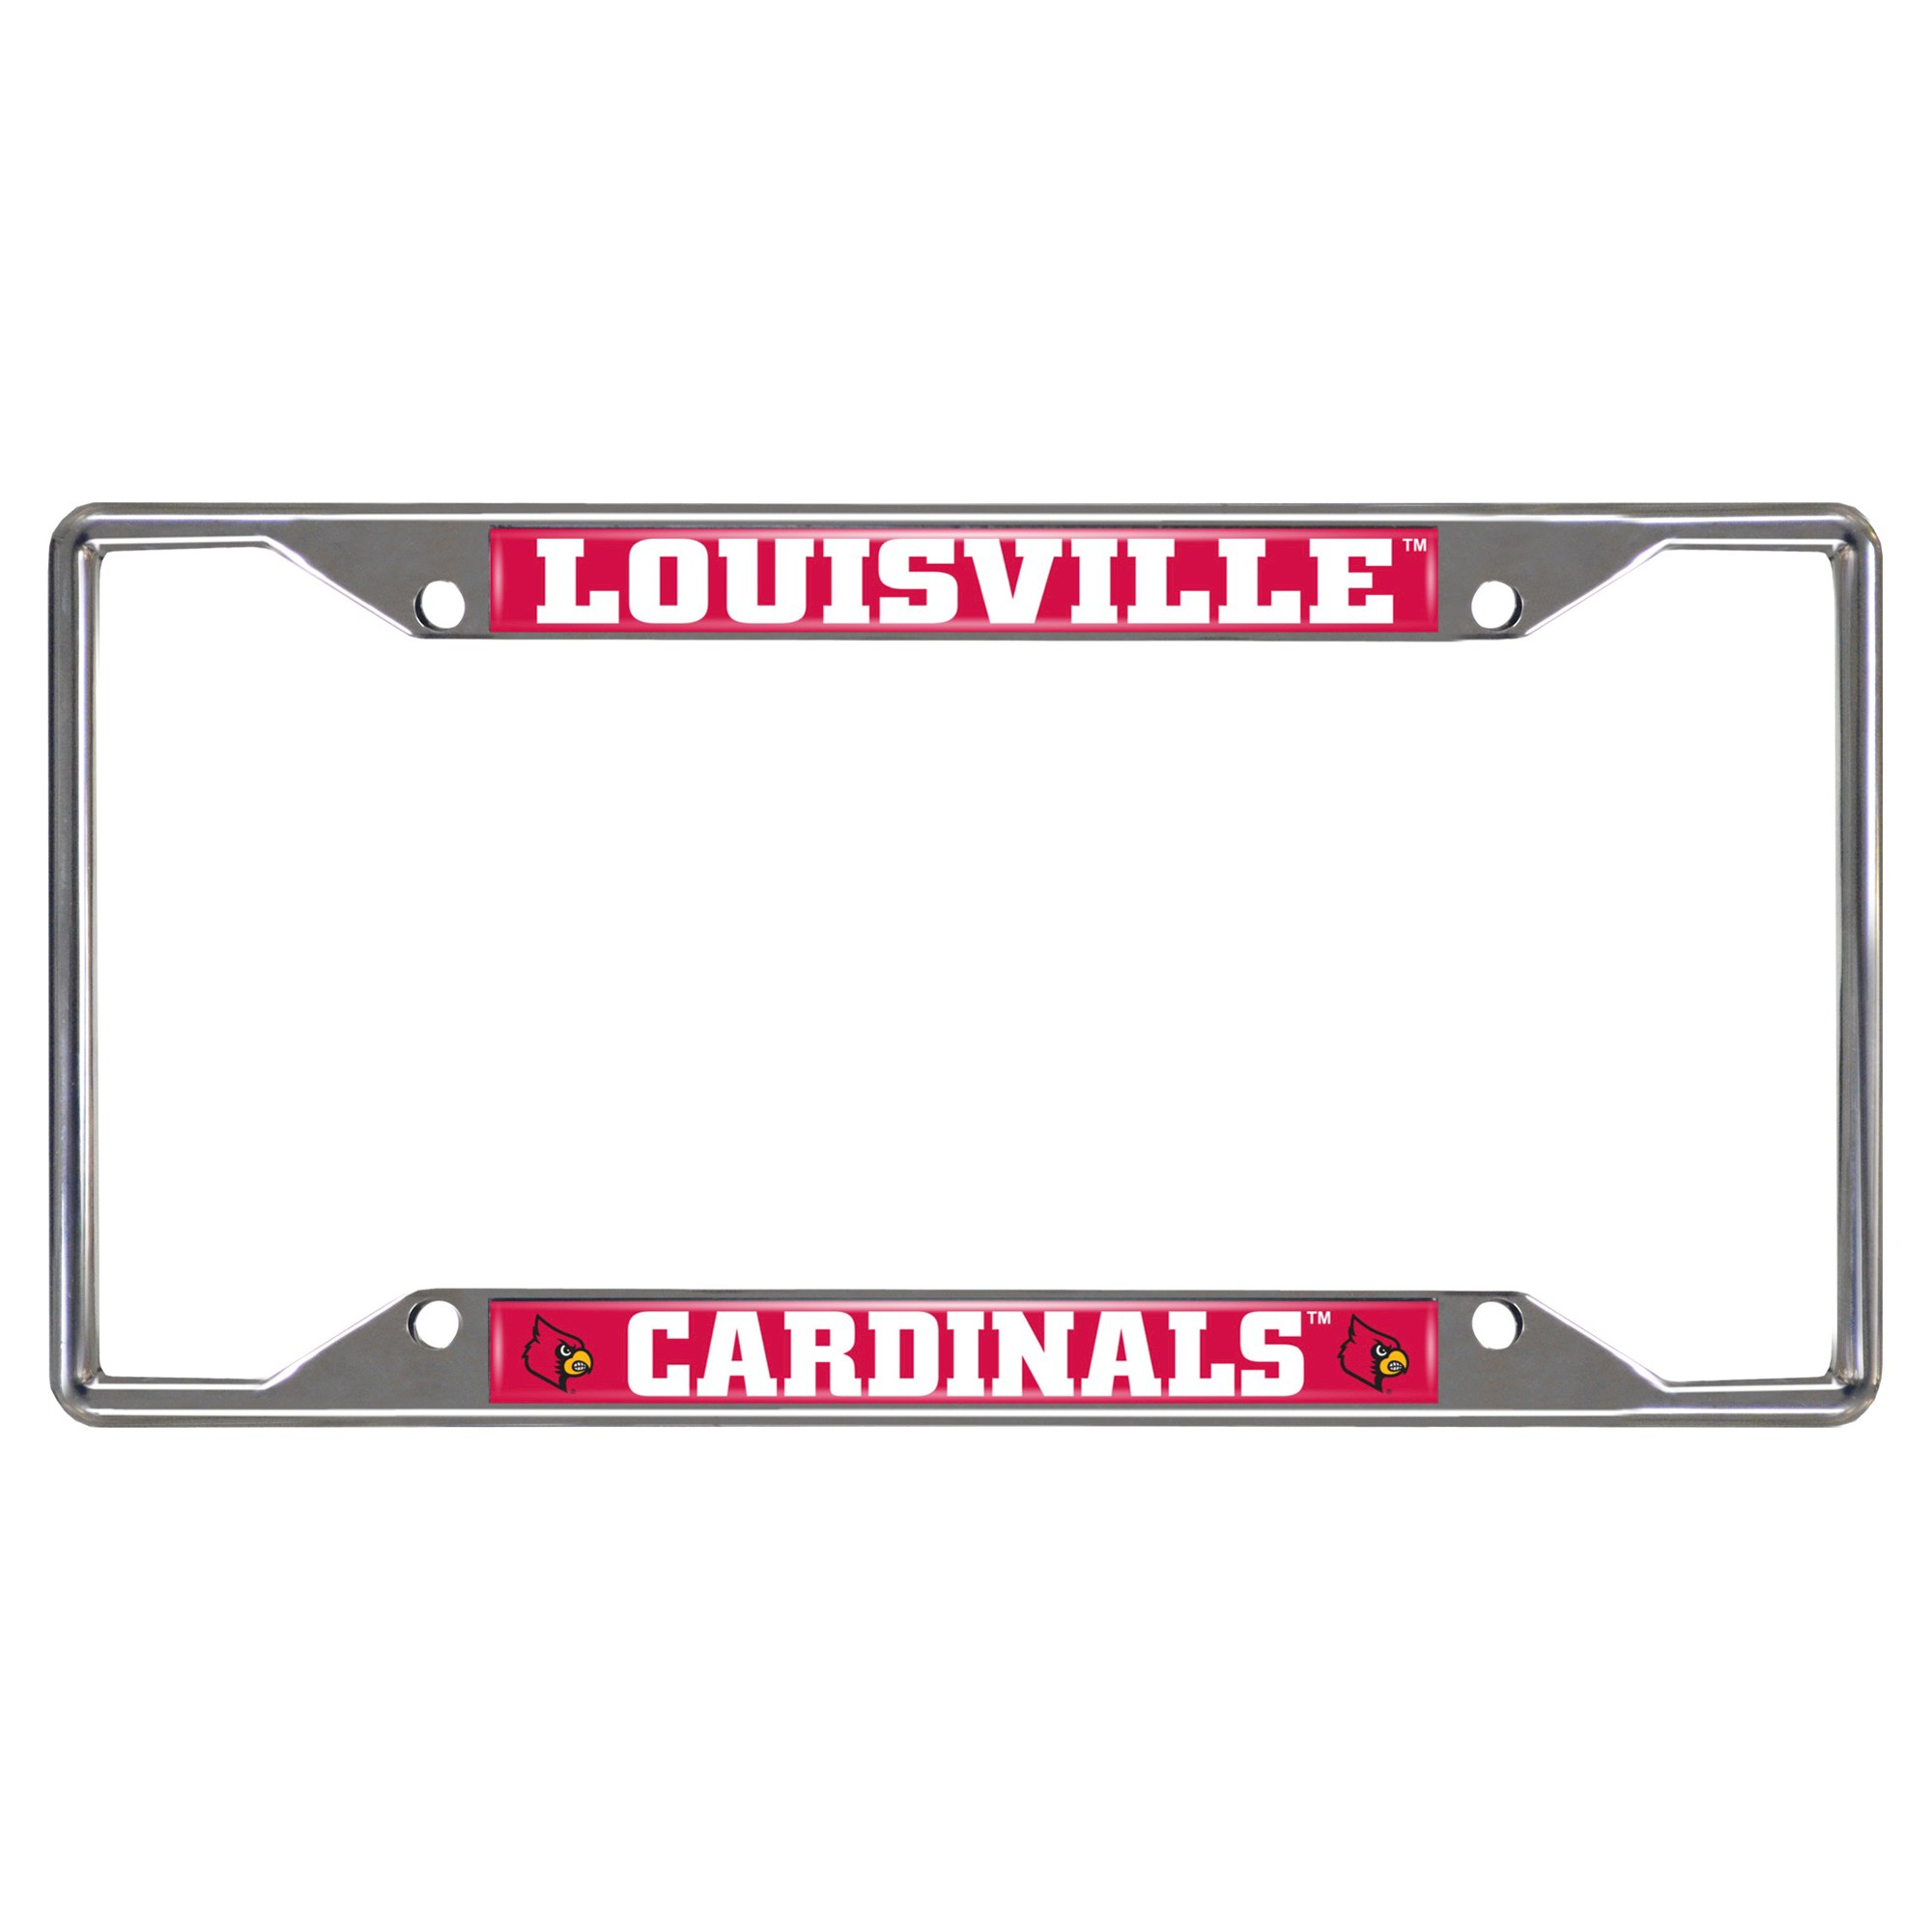 NCAA License Plate Frame University of Louisville | License plate ...